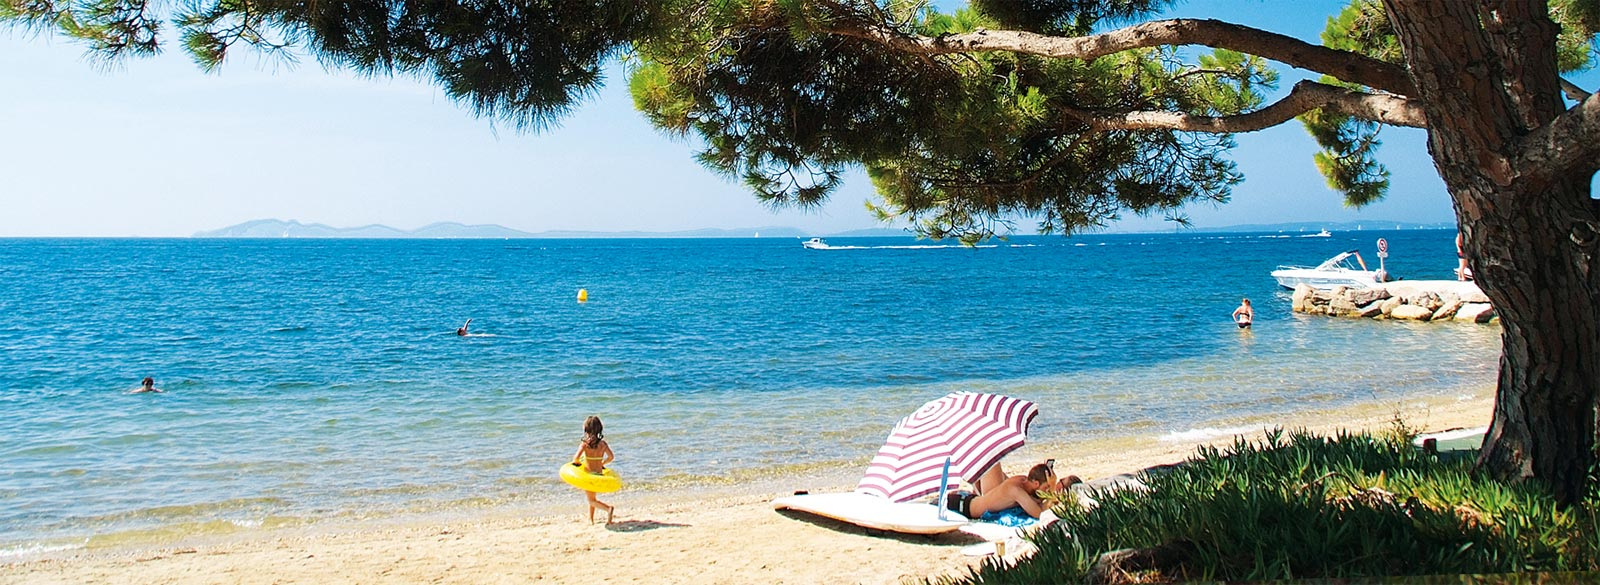 location week end littoral varois - emplacement tente du camping